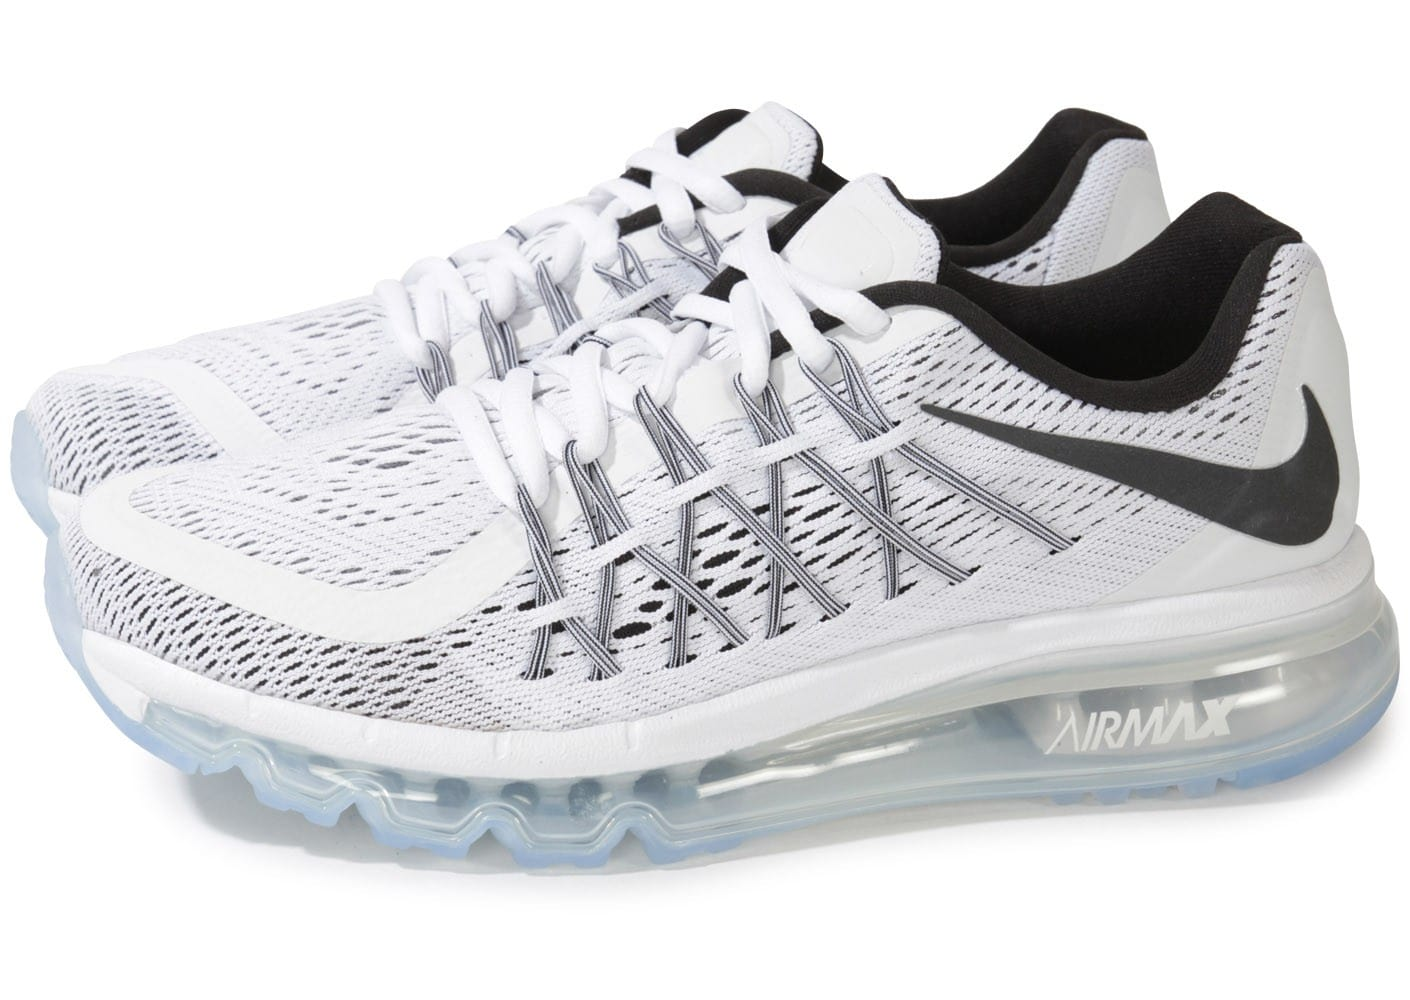 nike air max 2015 gs blanche et noire chaussures chaussures chausport. Black Bedroom Furniture Sets. Home Design Ideas